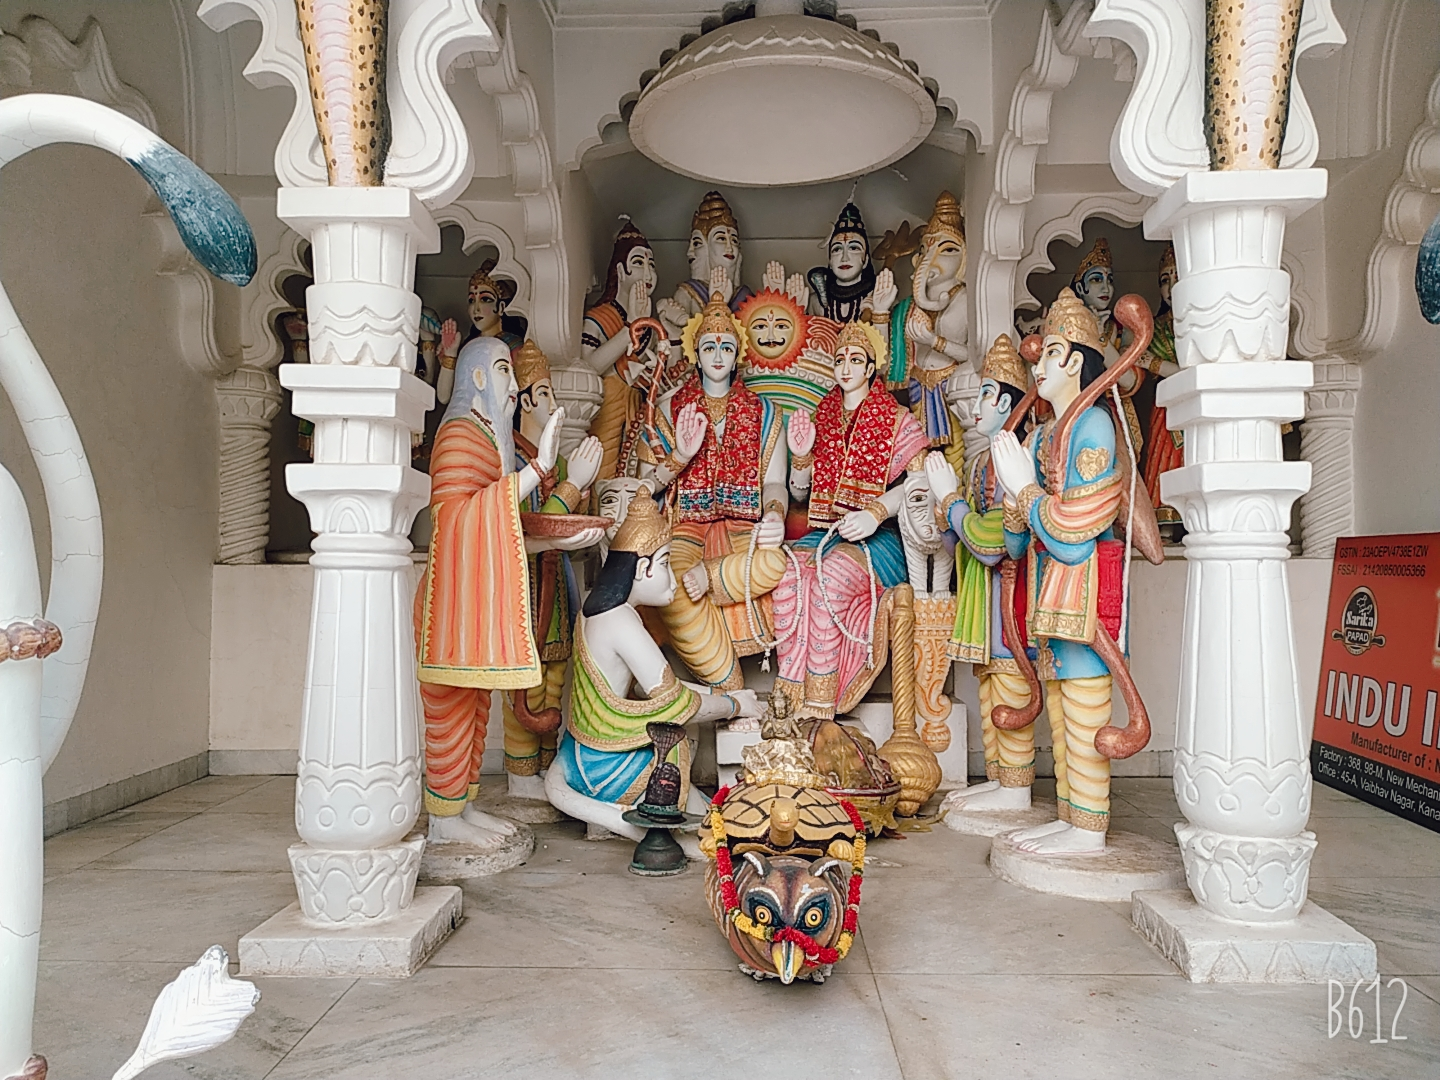 temple-of-ravan-in-indore-where-god-and-devils-are-equally-worshiped